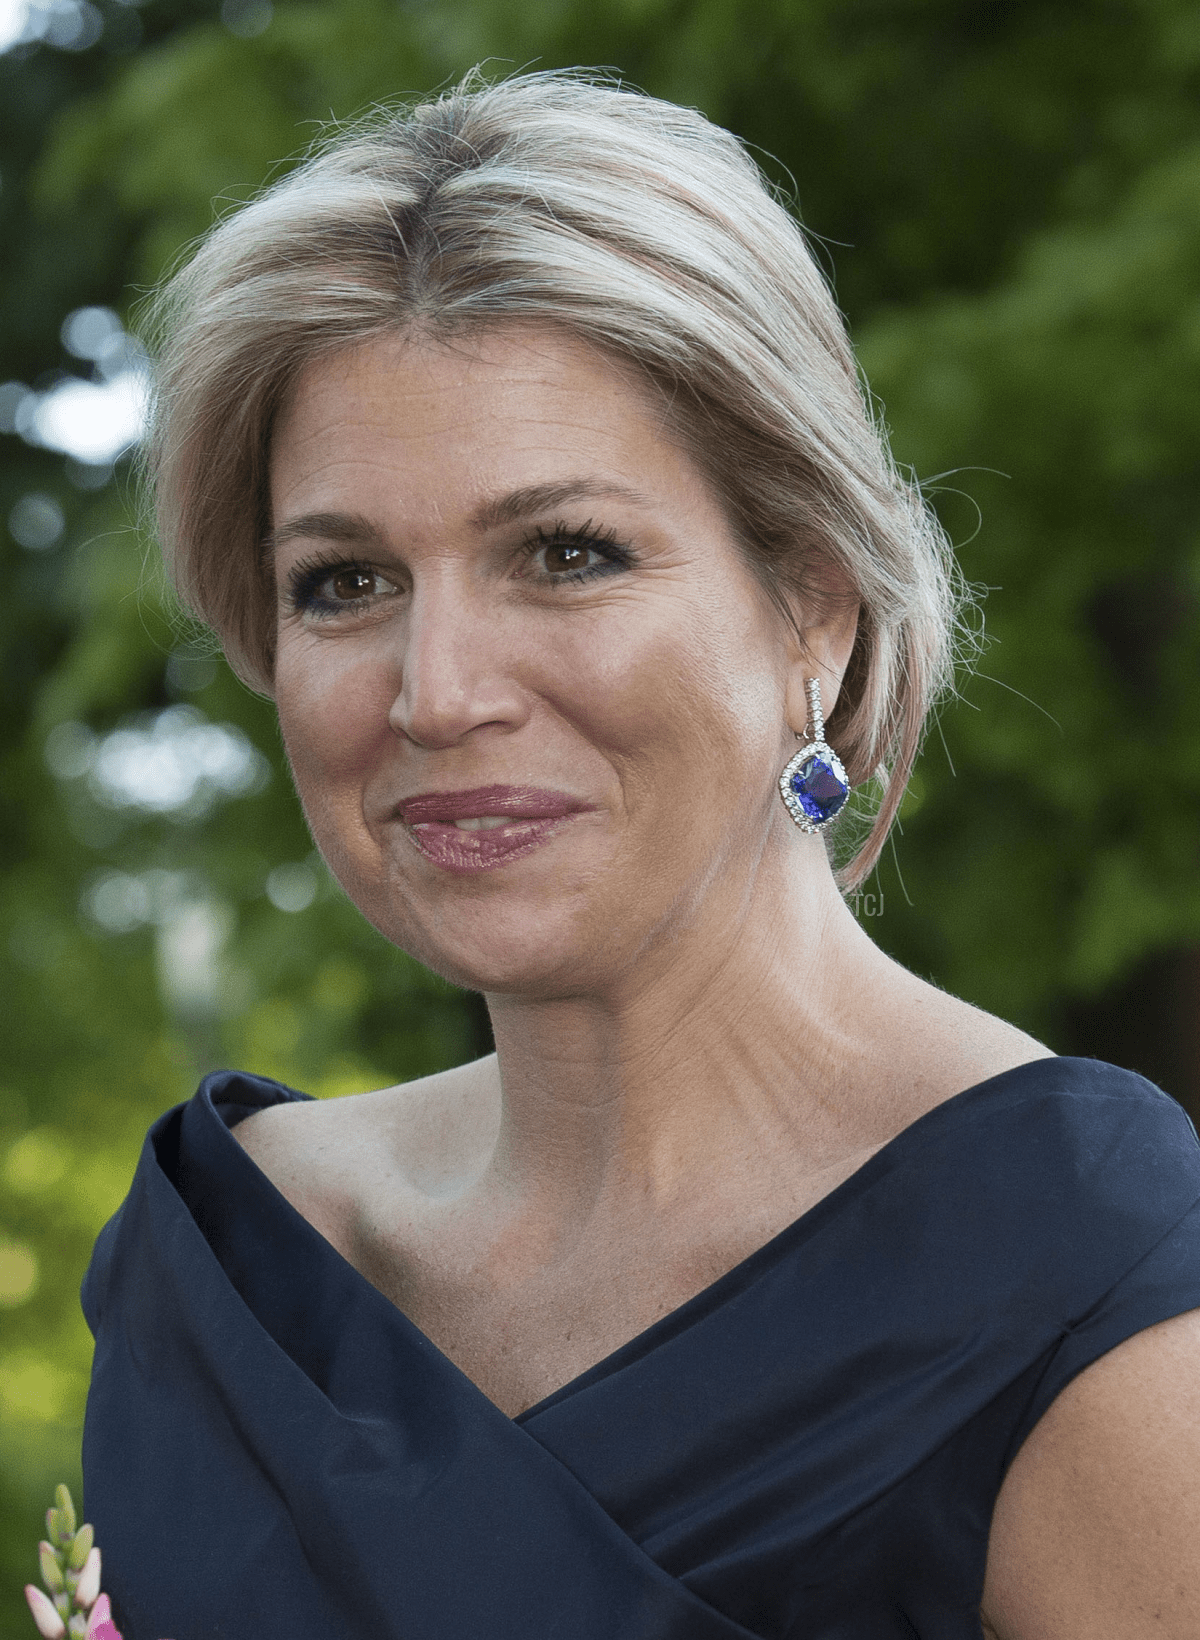 Queen Maxima of The Netherlands attends the opening of the Holland Festival at the Westergasfabriek on June 1, 2013 in Amsterdam